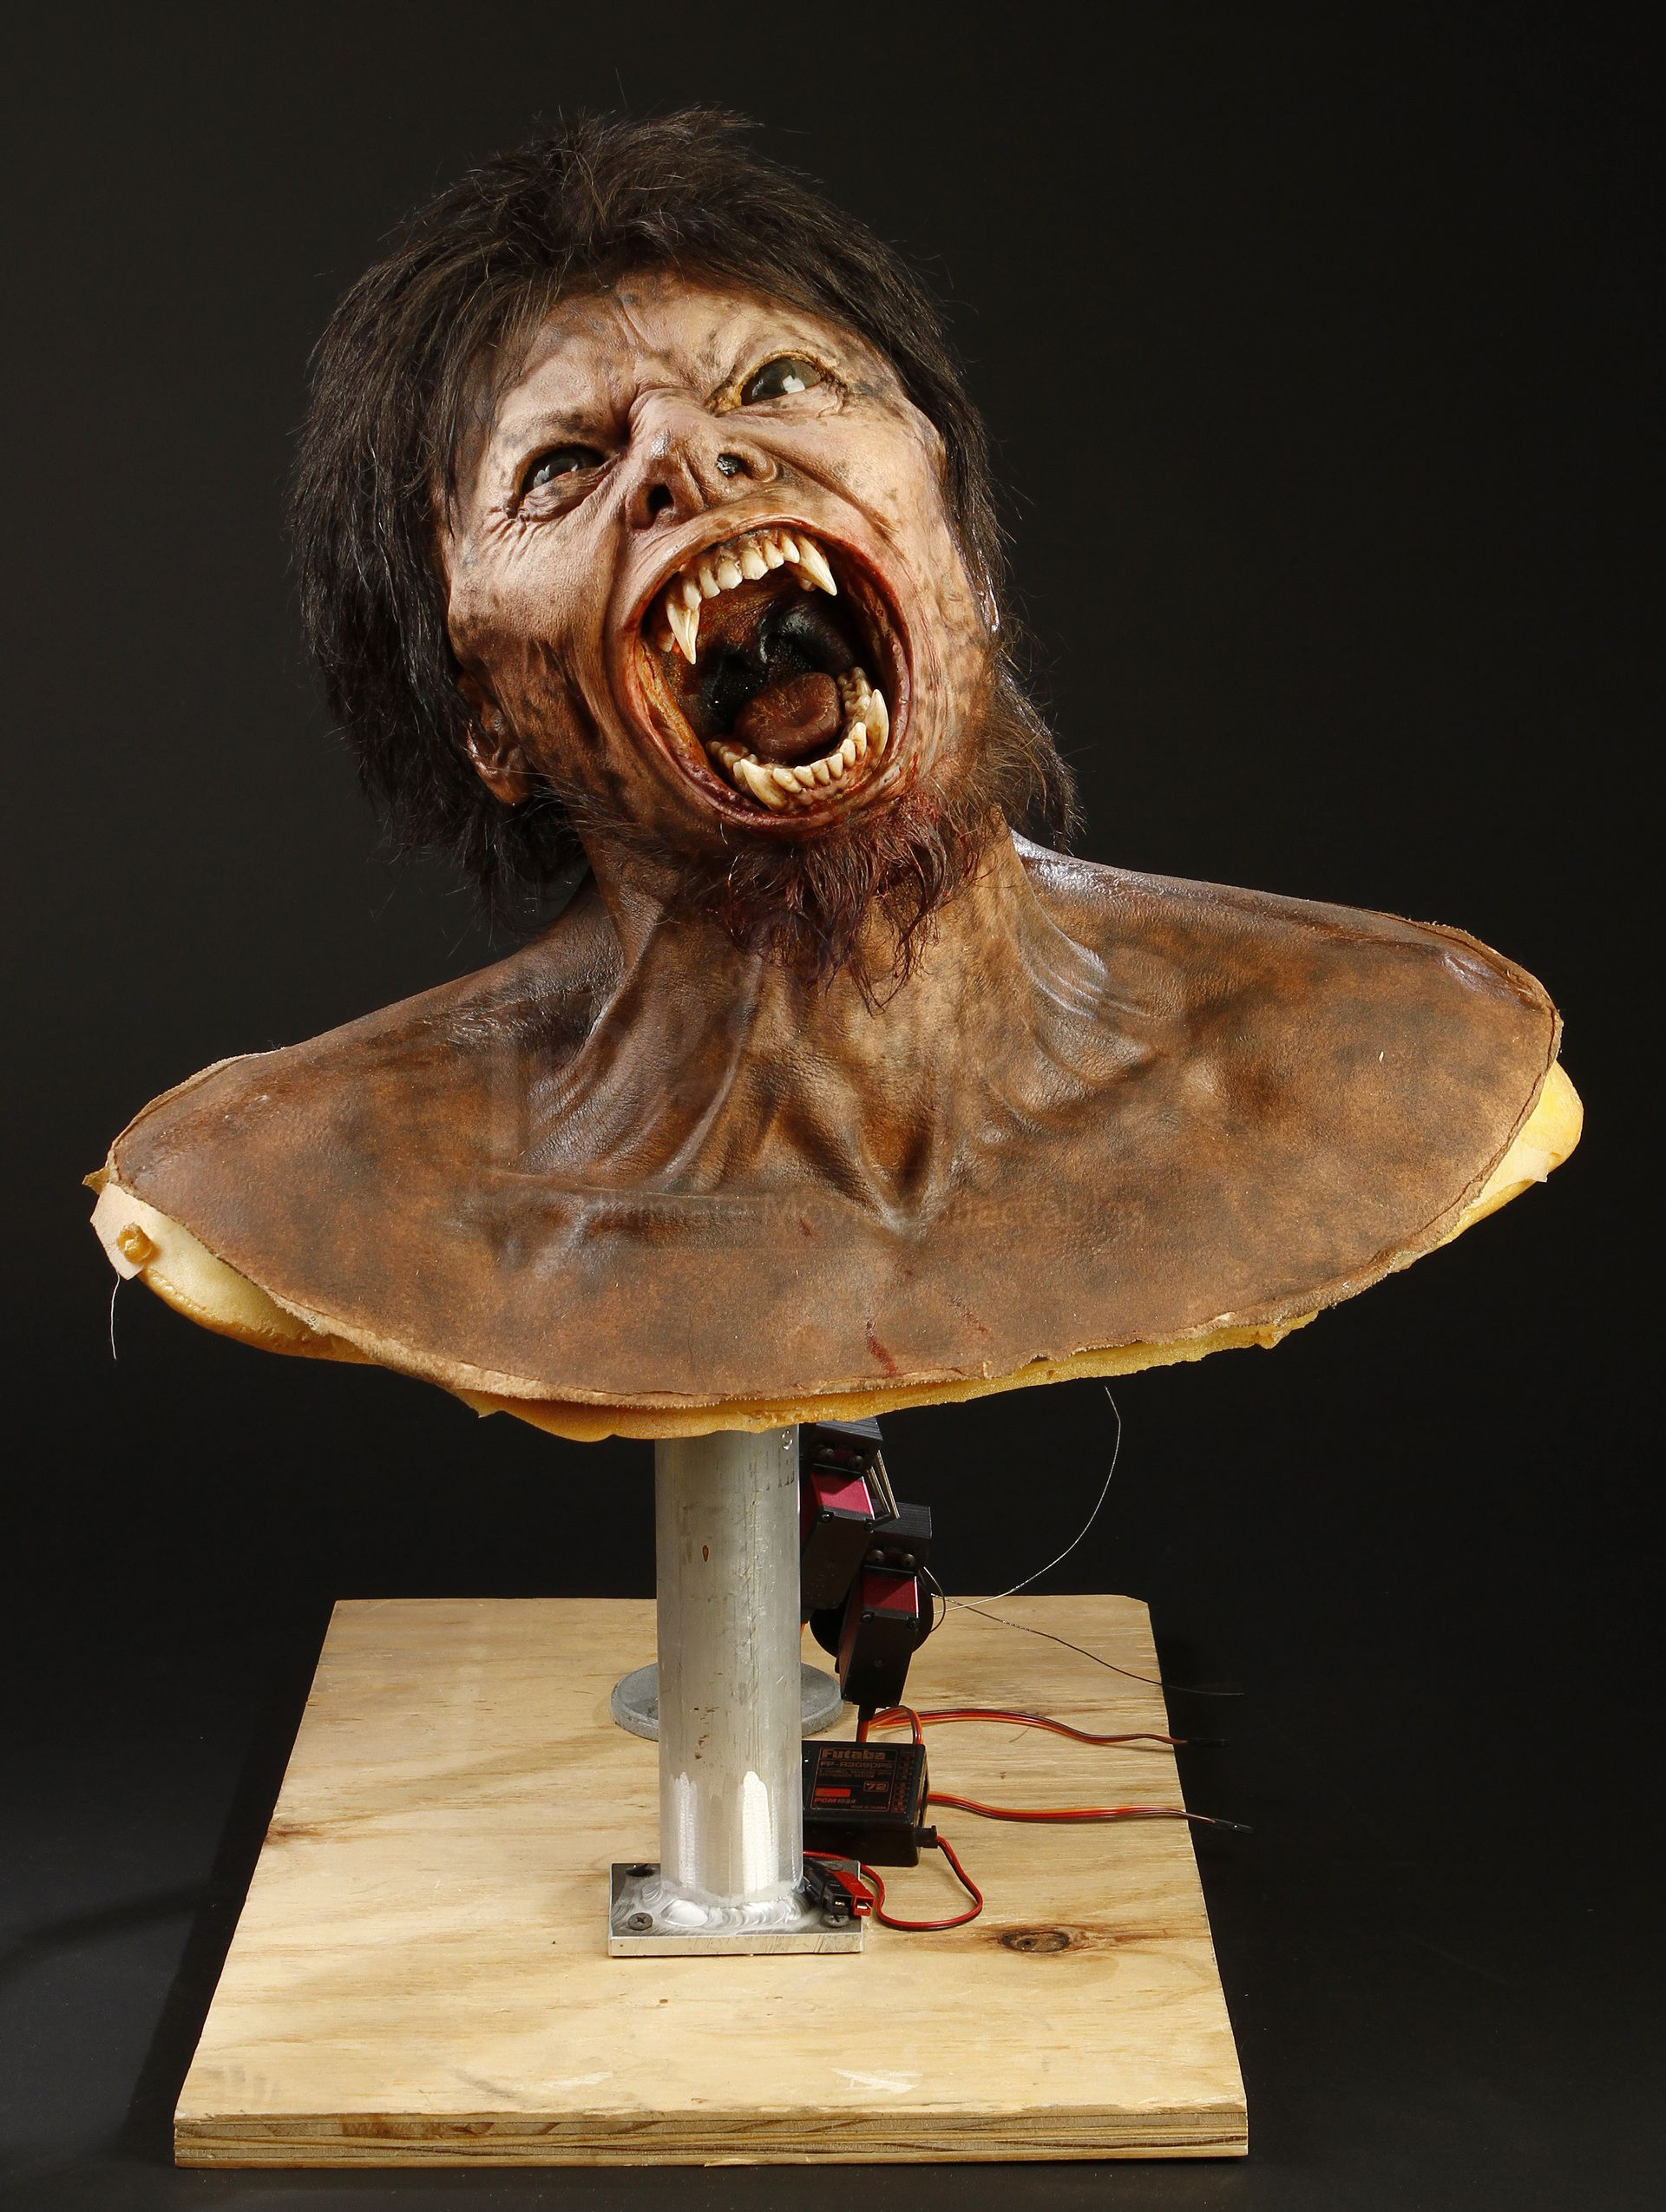 RICK BAKER AUCTION - Lot 414 - Lawrence Talbot (Benicio Del Toro) Animatronic Transformation Puppet | Prop Store - Ultimate Movie Collectables